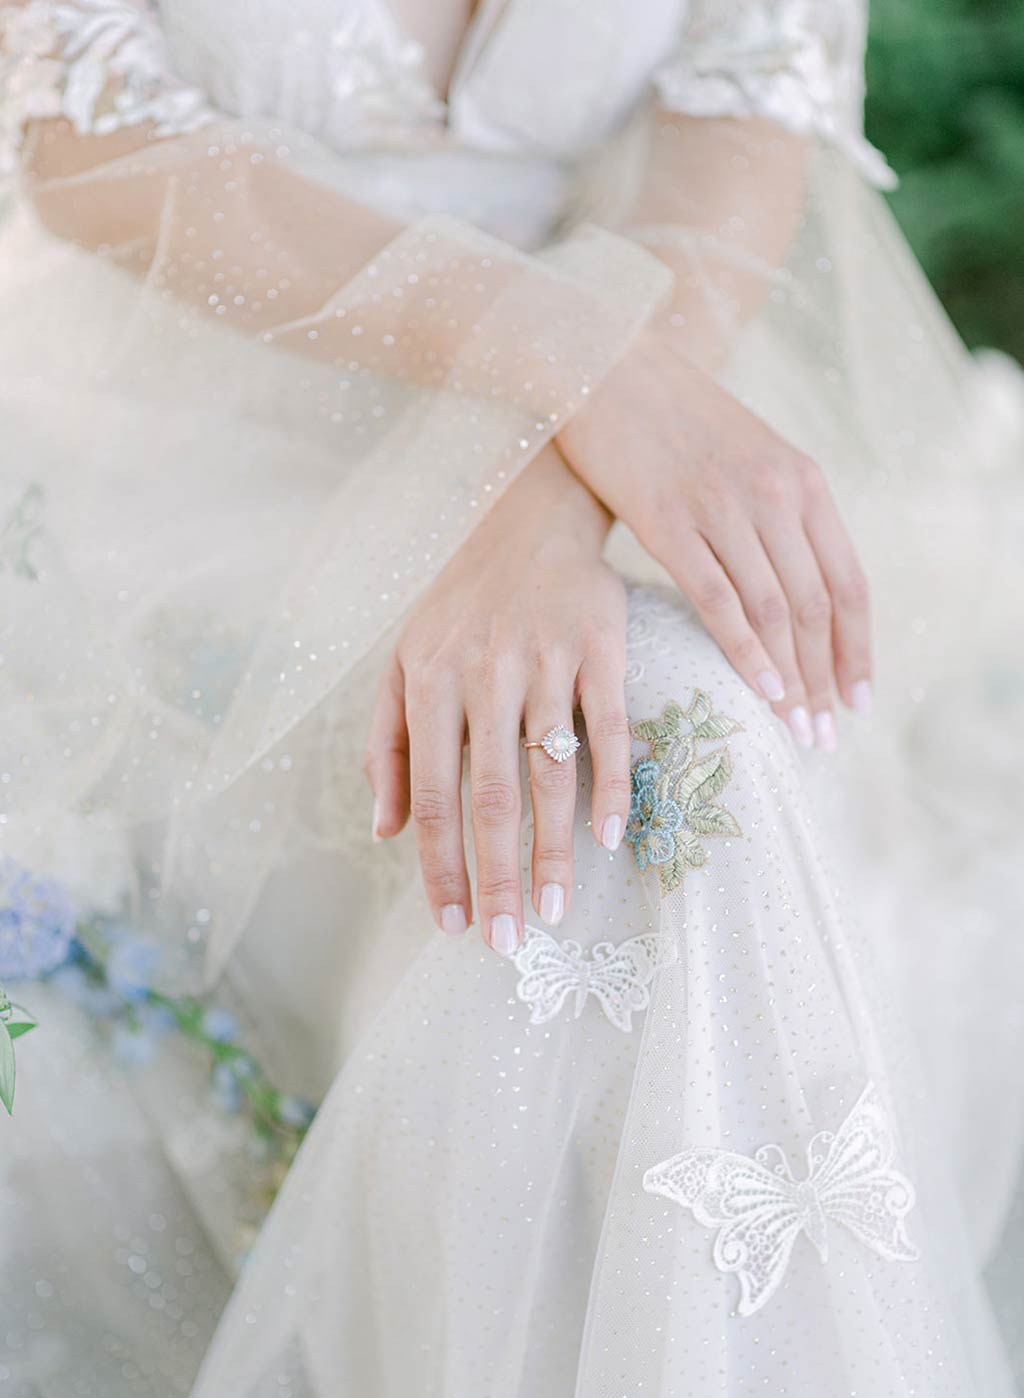 Wedding Ring with Wedding Dress